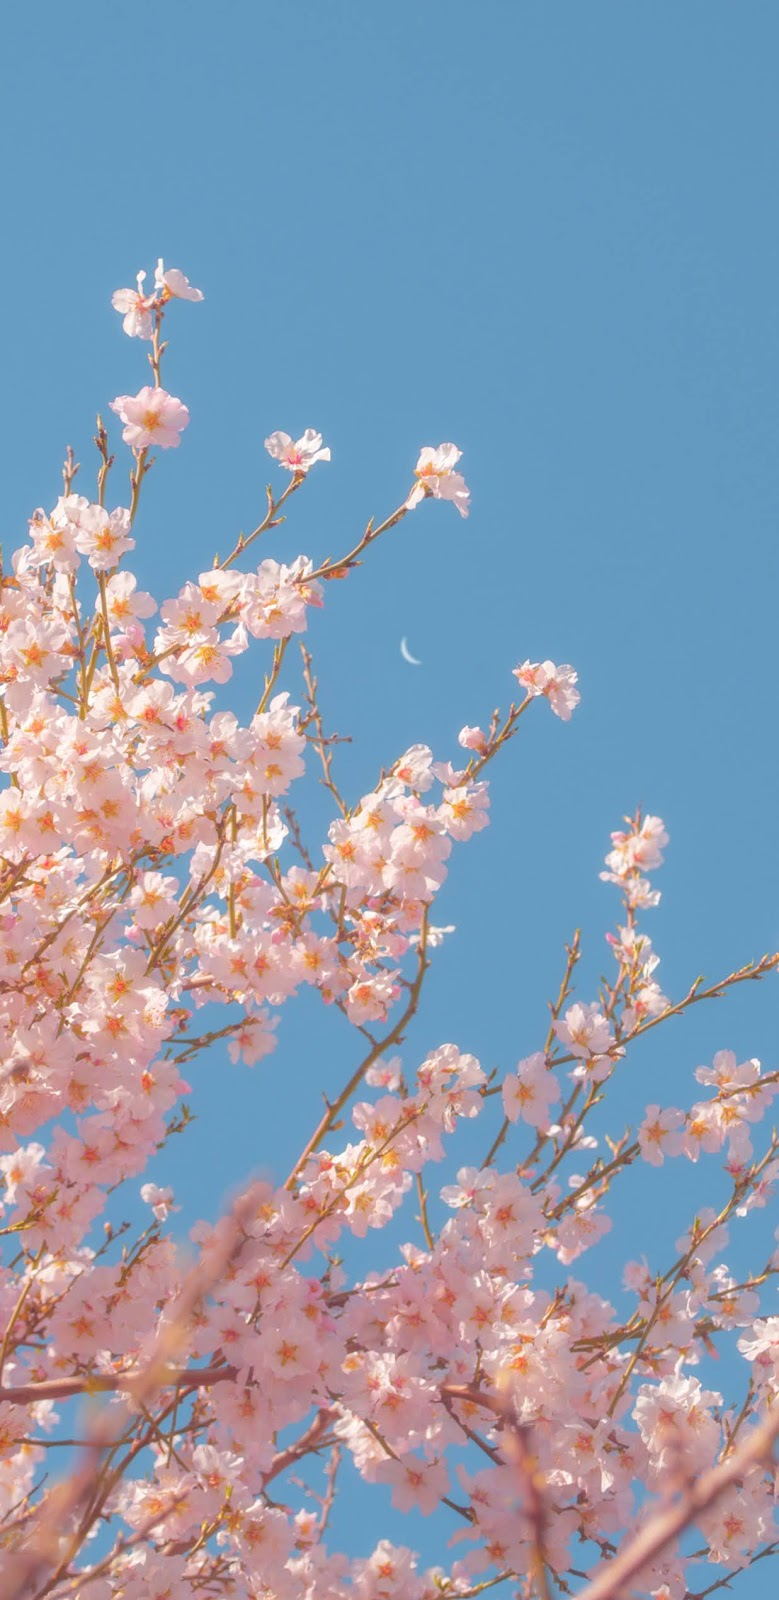 Sakura in the blue sky